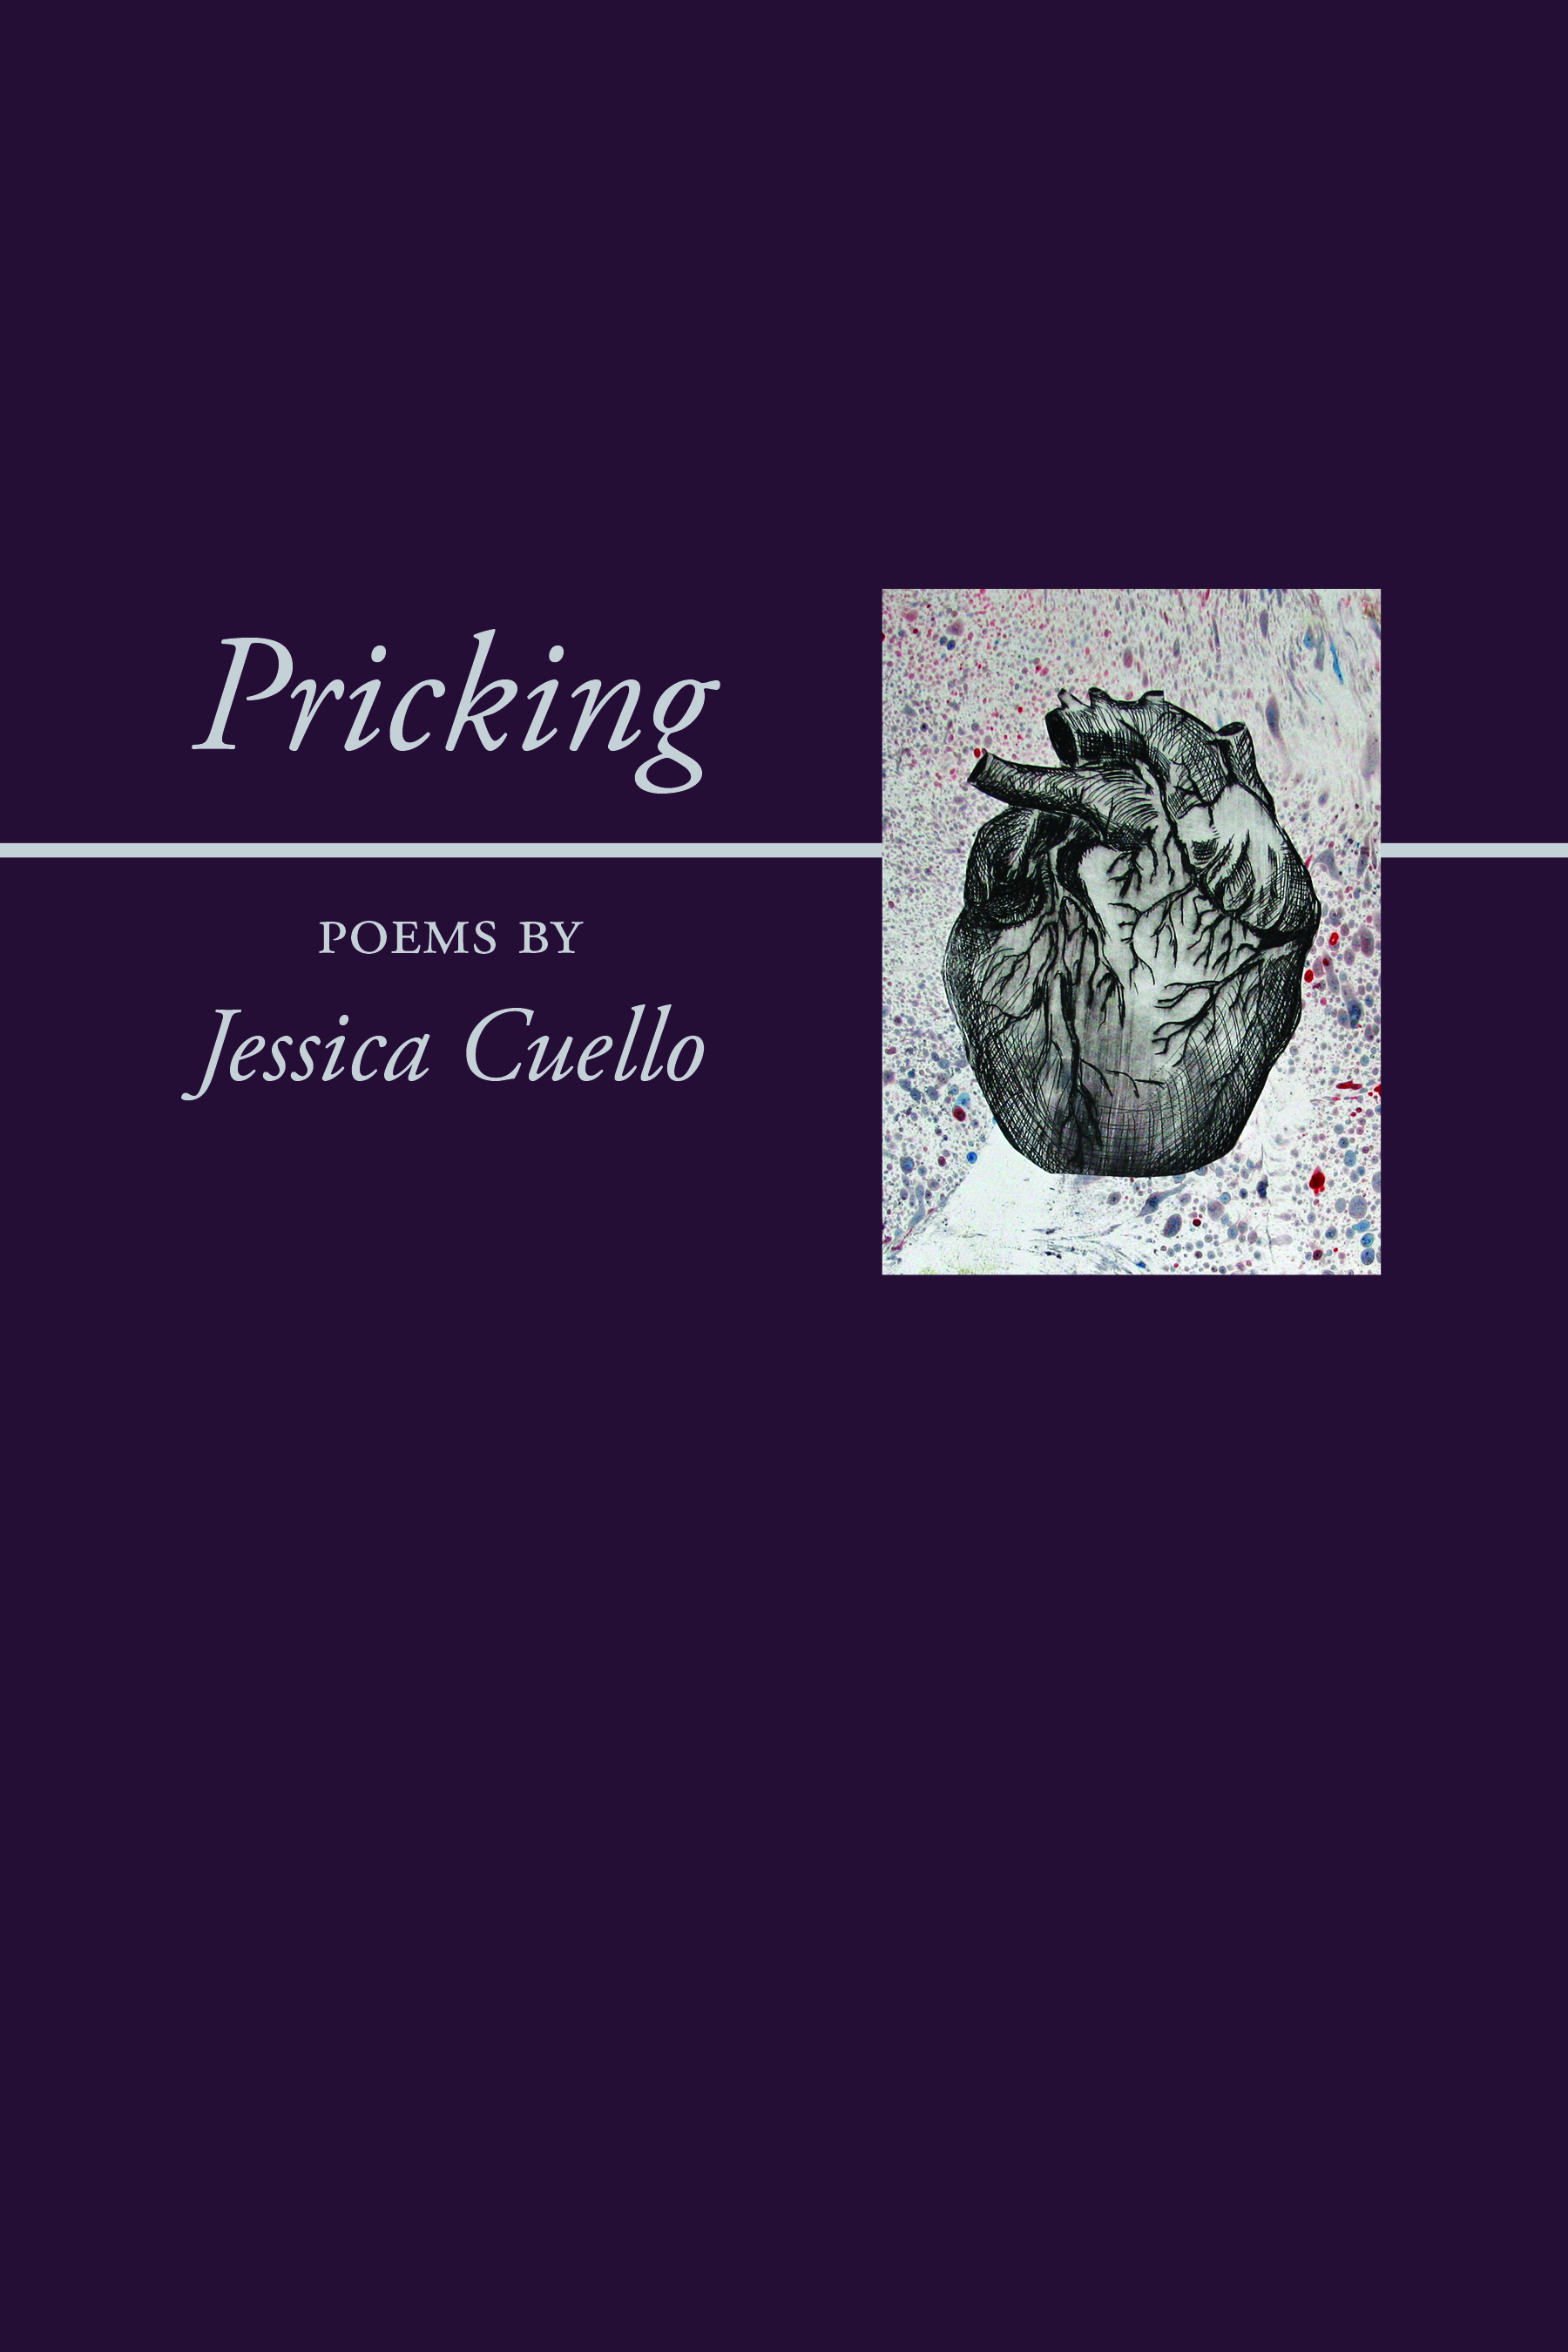 The book cover of Pricking. The cover is solid dark purple and has a small illustrated anatomical heart on the right side.